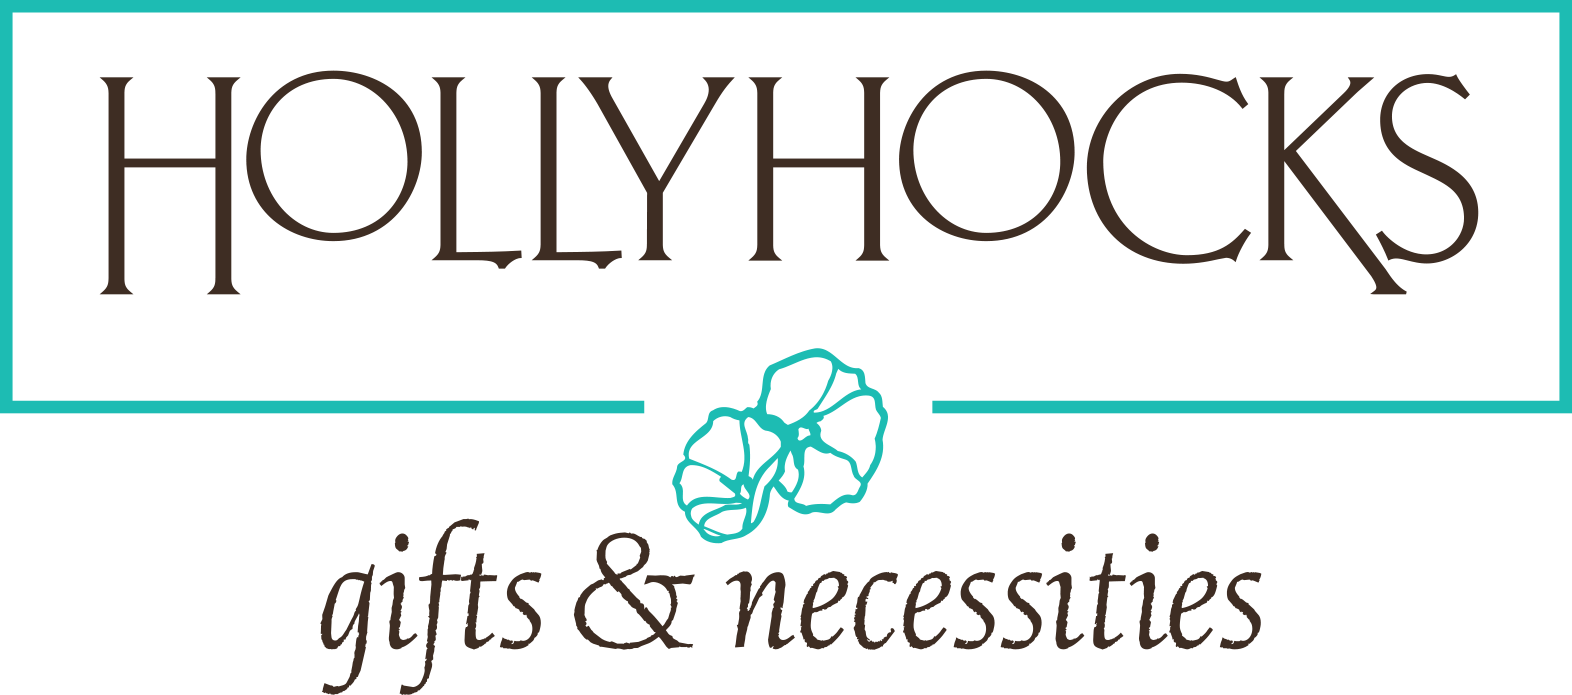 Hollyhocks Gifts & Accessories